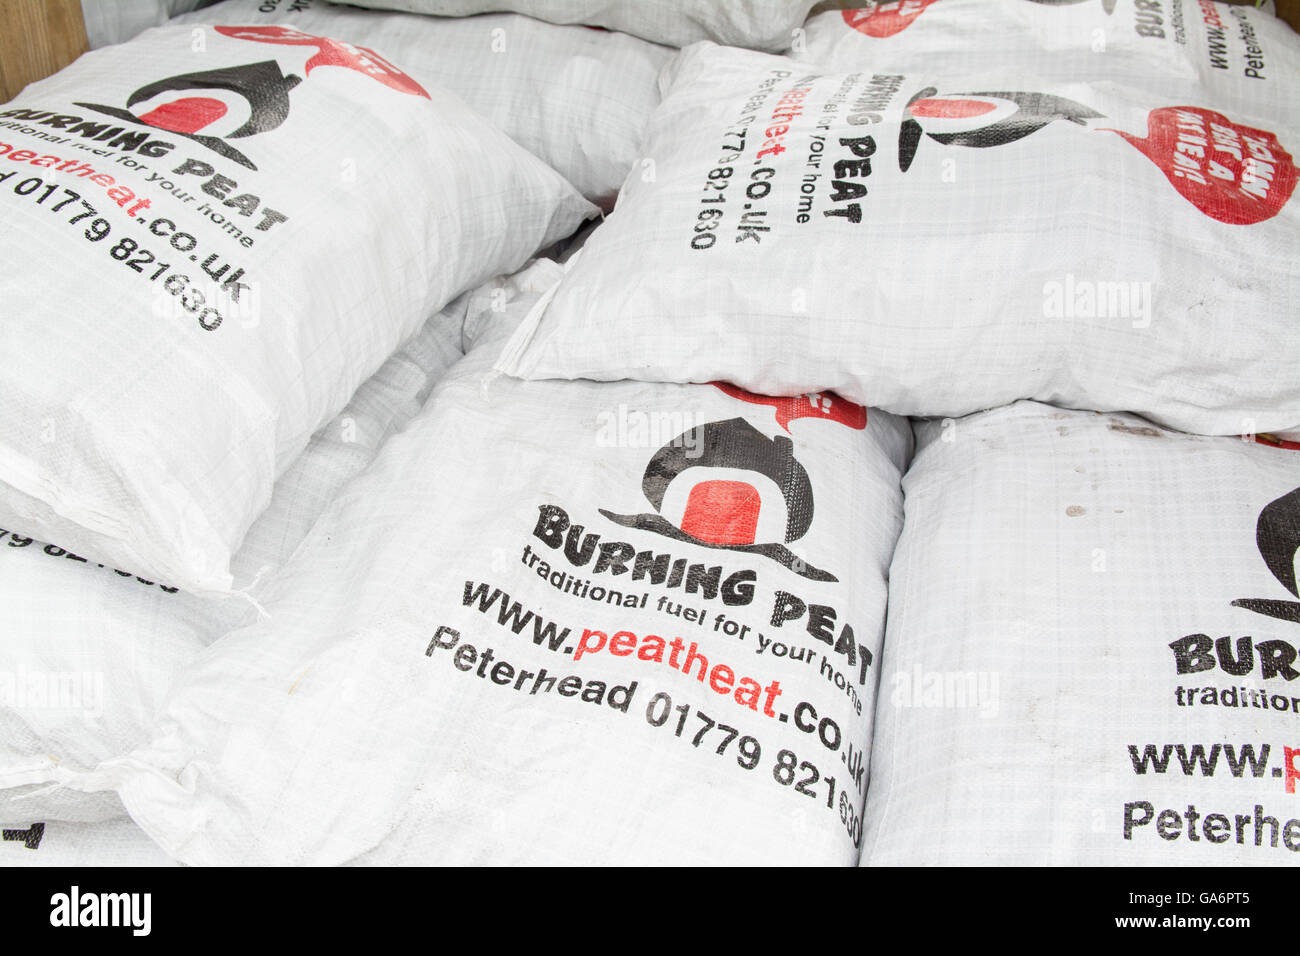 bags of Burning Peat fuel - Stock Image